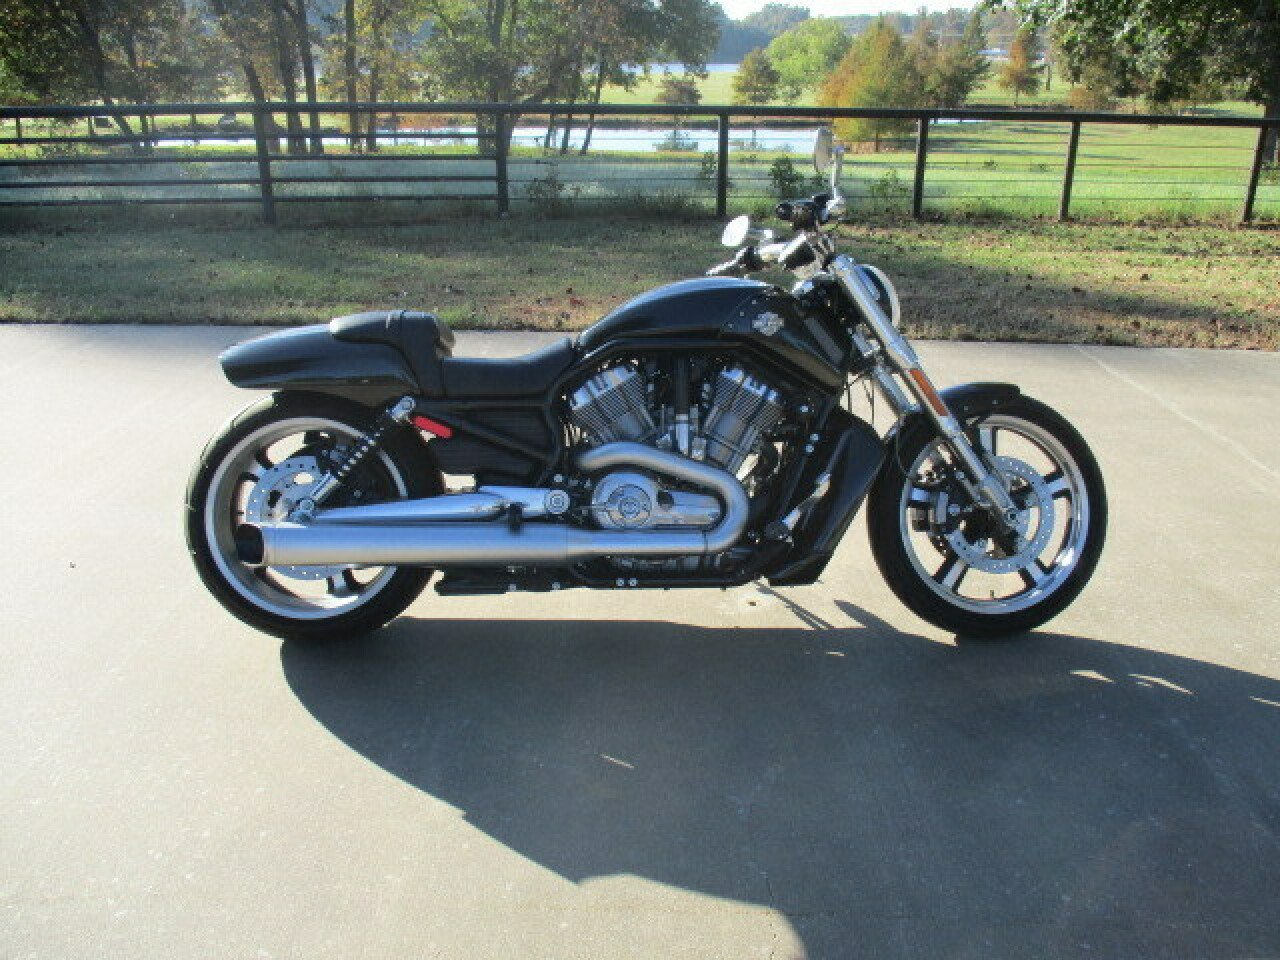 Harley Davidson V Rod Motorcycles For Sale Texas >> 2015 Harley-Davidson V-Rod Muscle for sale near Flint, Texas 75762 - Motorcycles on Autotrader